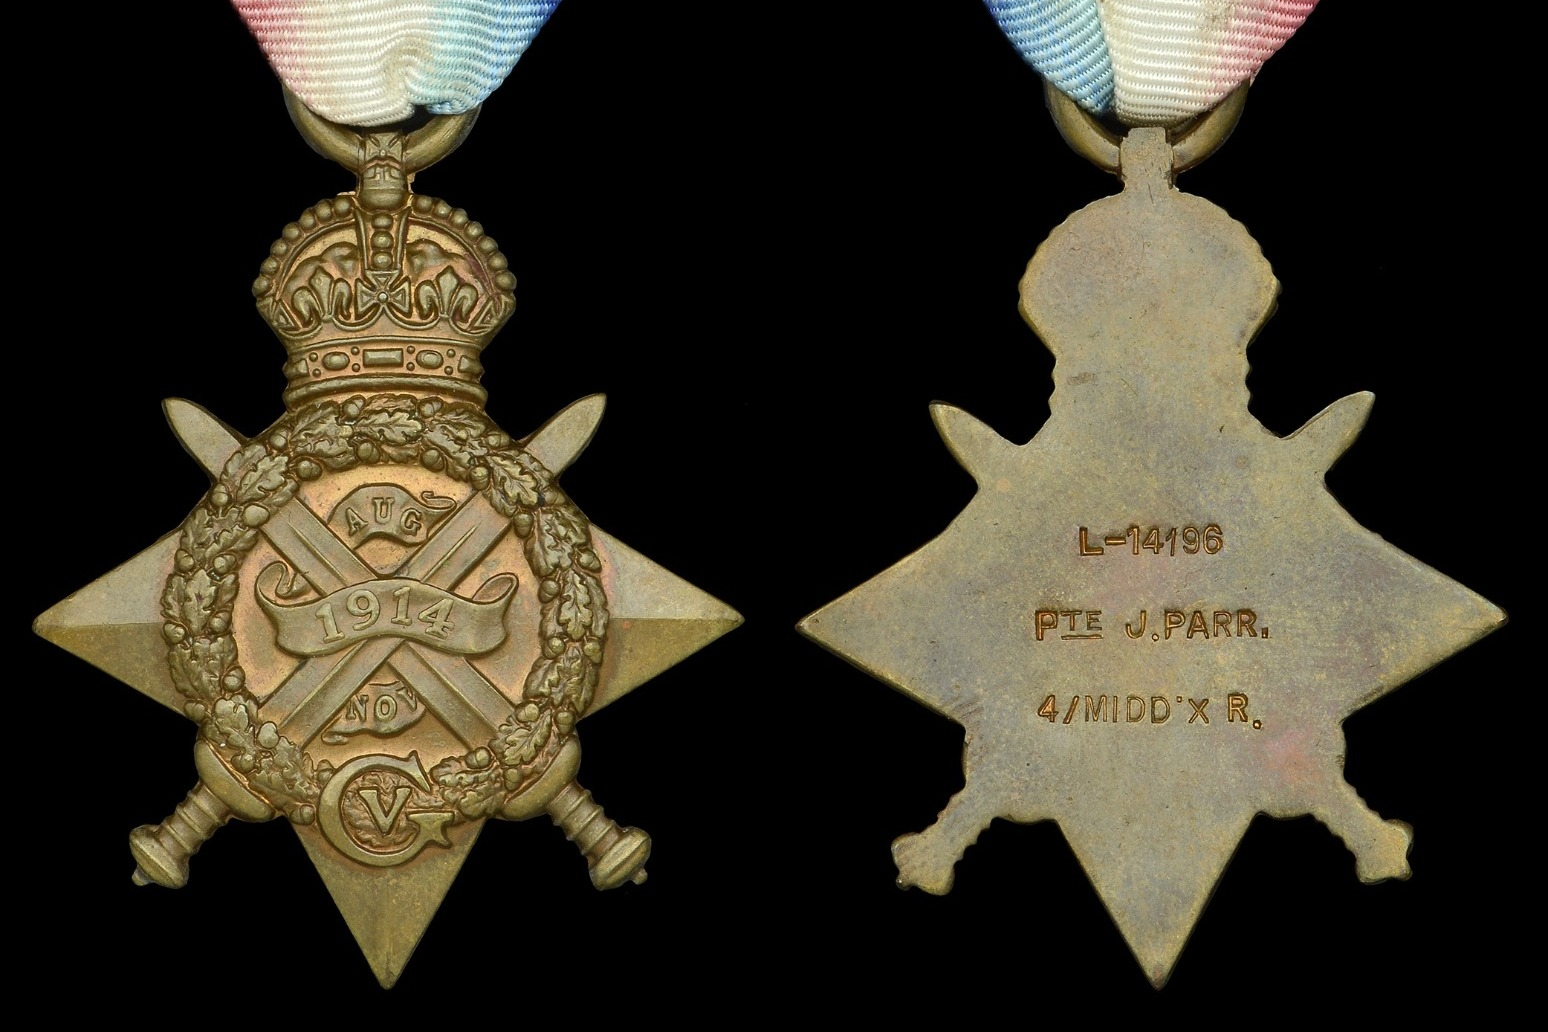 Medal belonging to first British soldier killed in Great War sells for £17,000